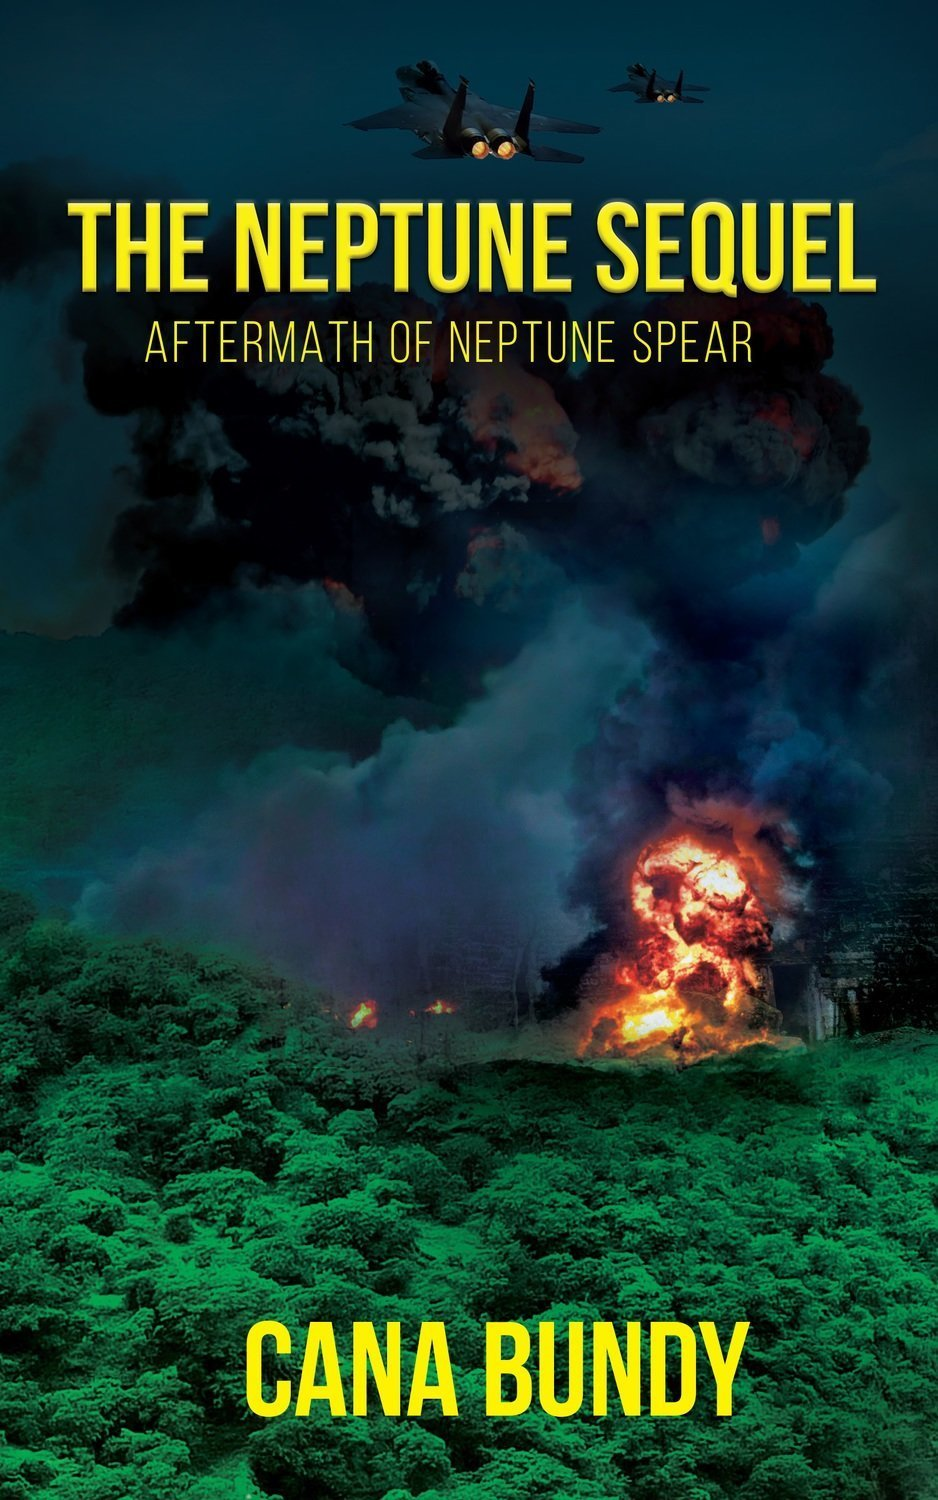 The Neptune Sequel: Aftermath of Neptune Spear - Thriller